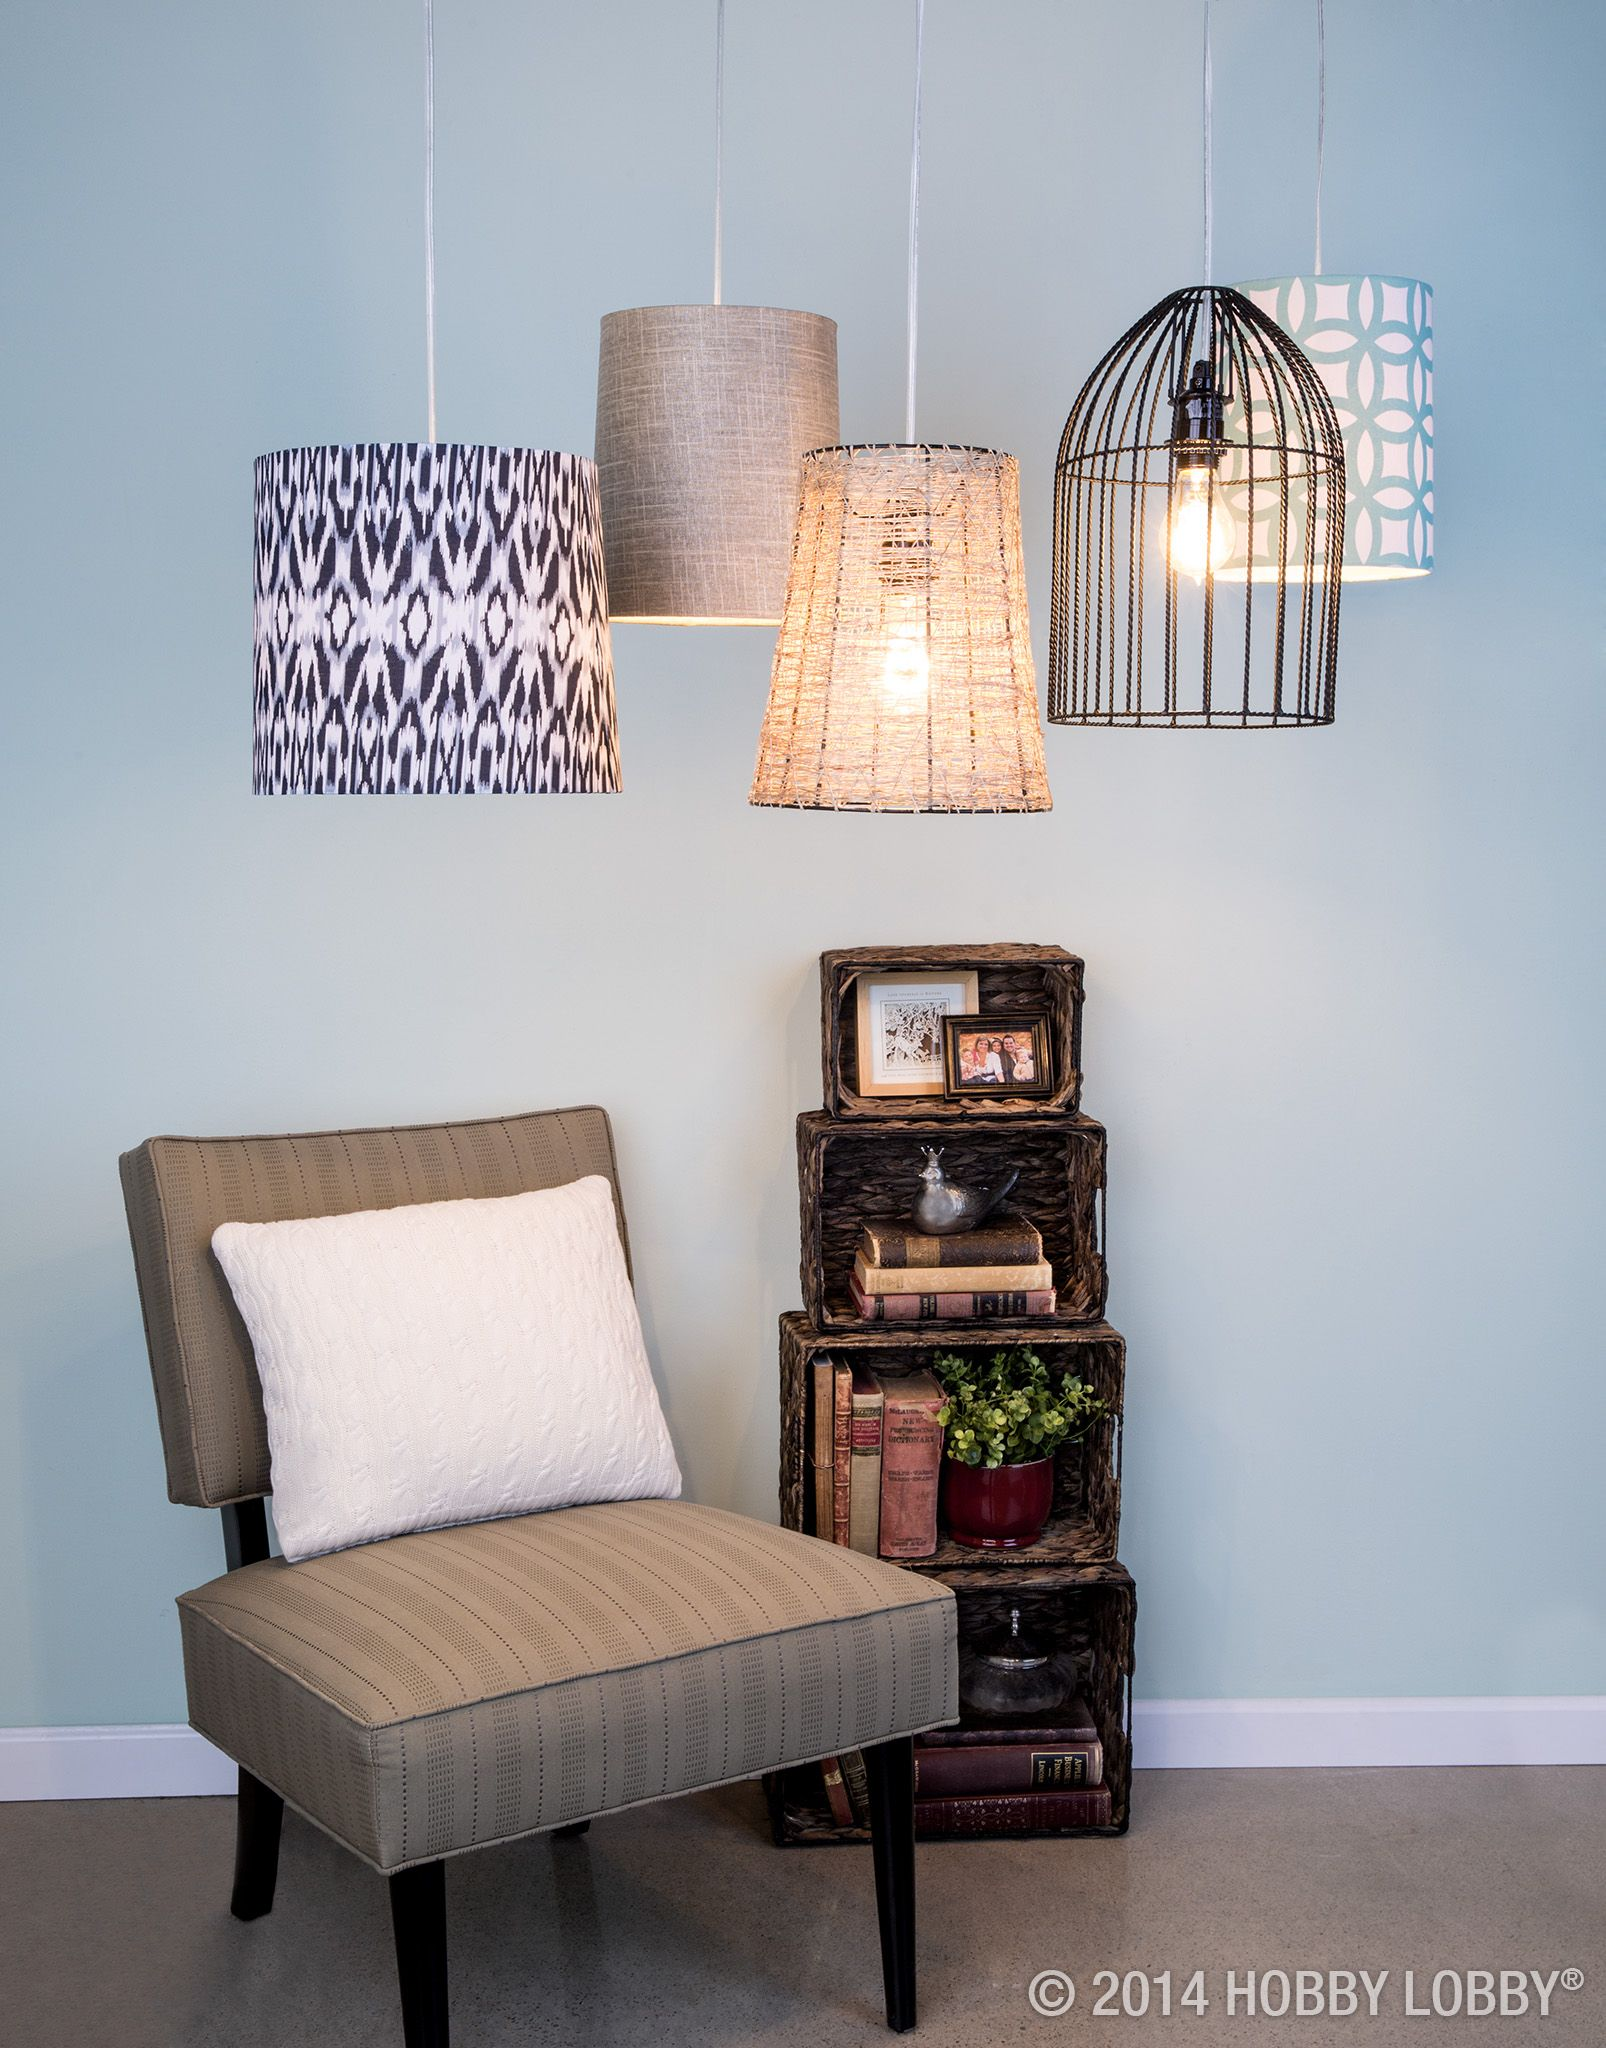 Overhead Lighting Give Your Overhead Lighting An Instant Update With A Diy